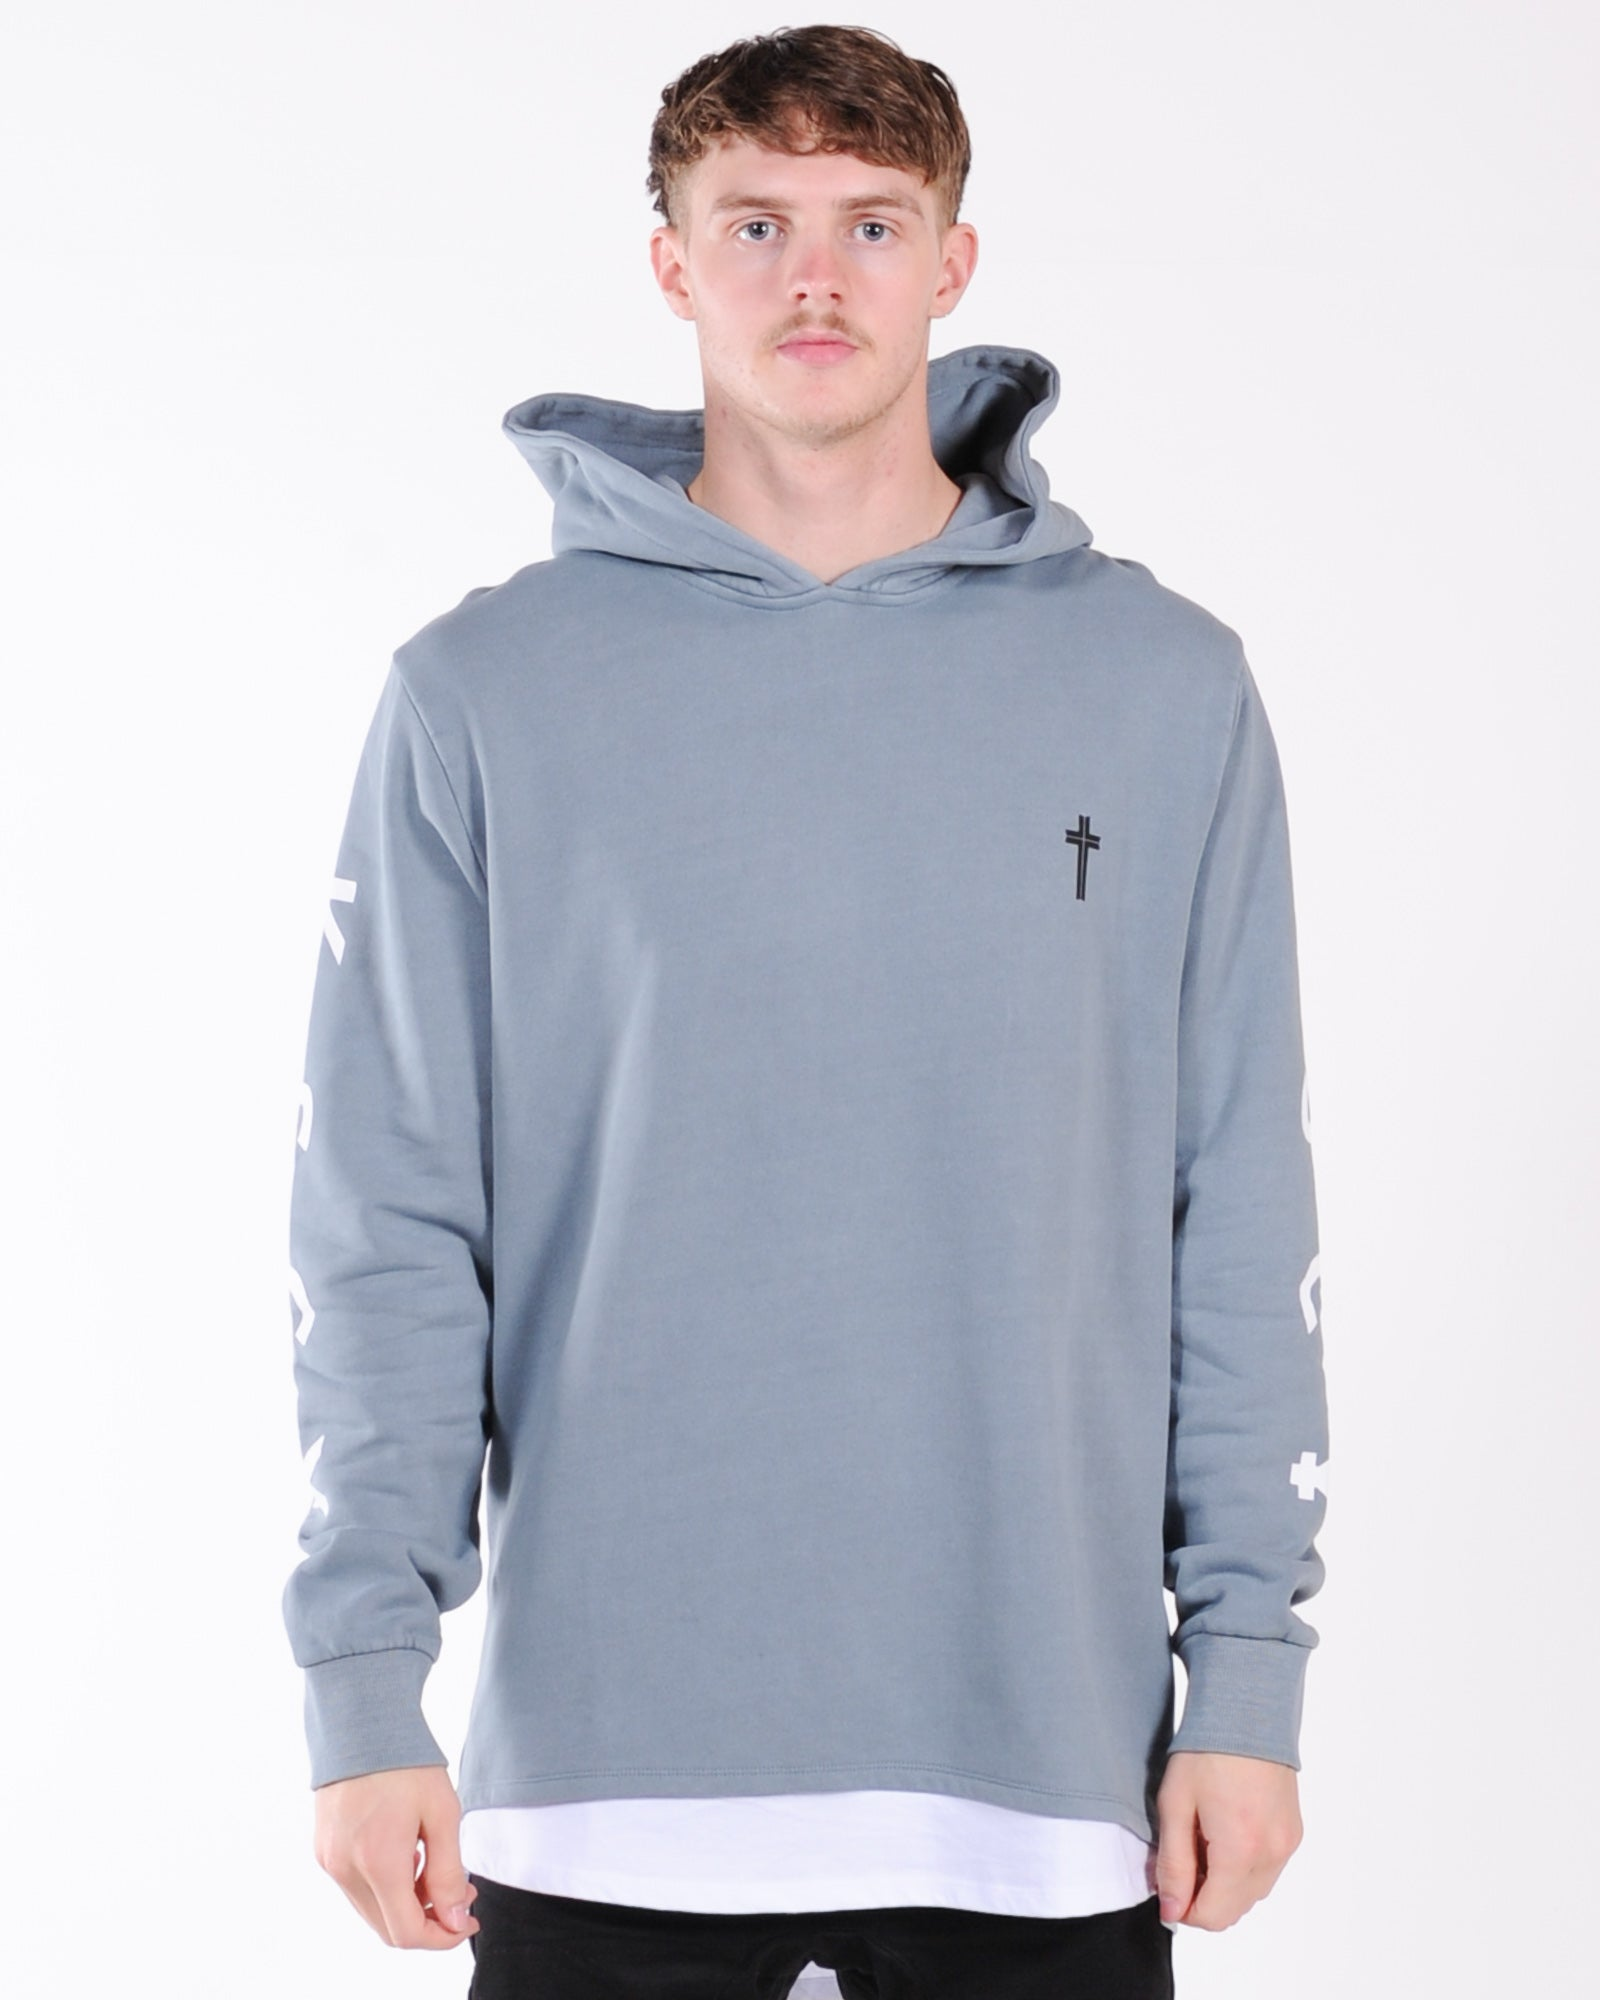 Kiss Chacey Exchange Hood Layered Cape Back Sweat - Pigment Lead